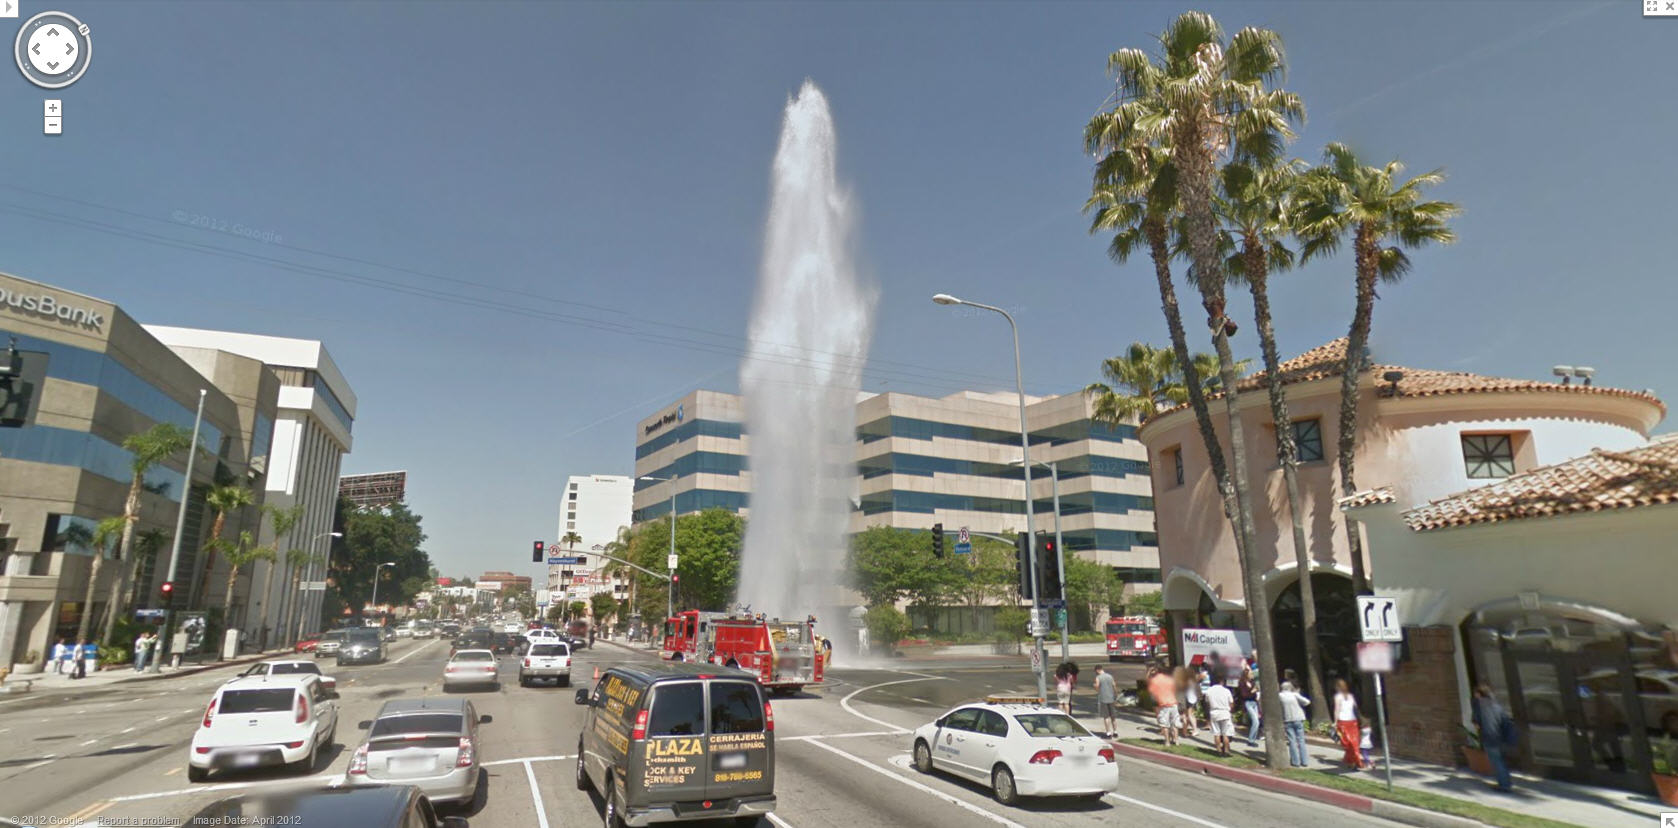 Google Captures A Broken Fire Hydrant On Ventura Boulevard In Los - Los angeles ventura map